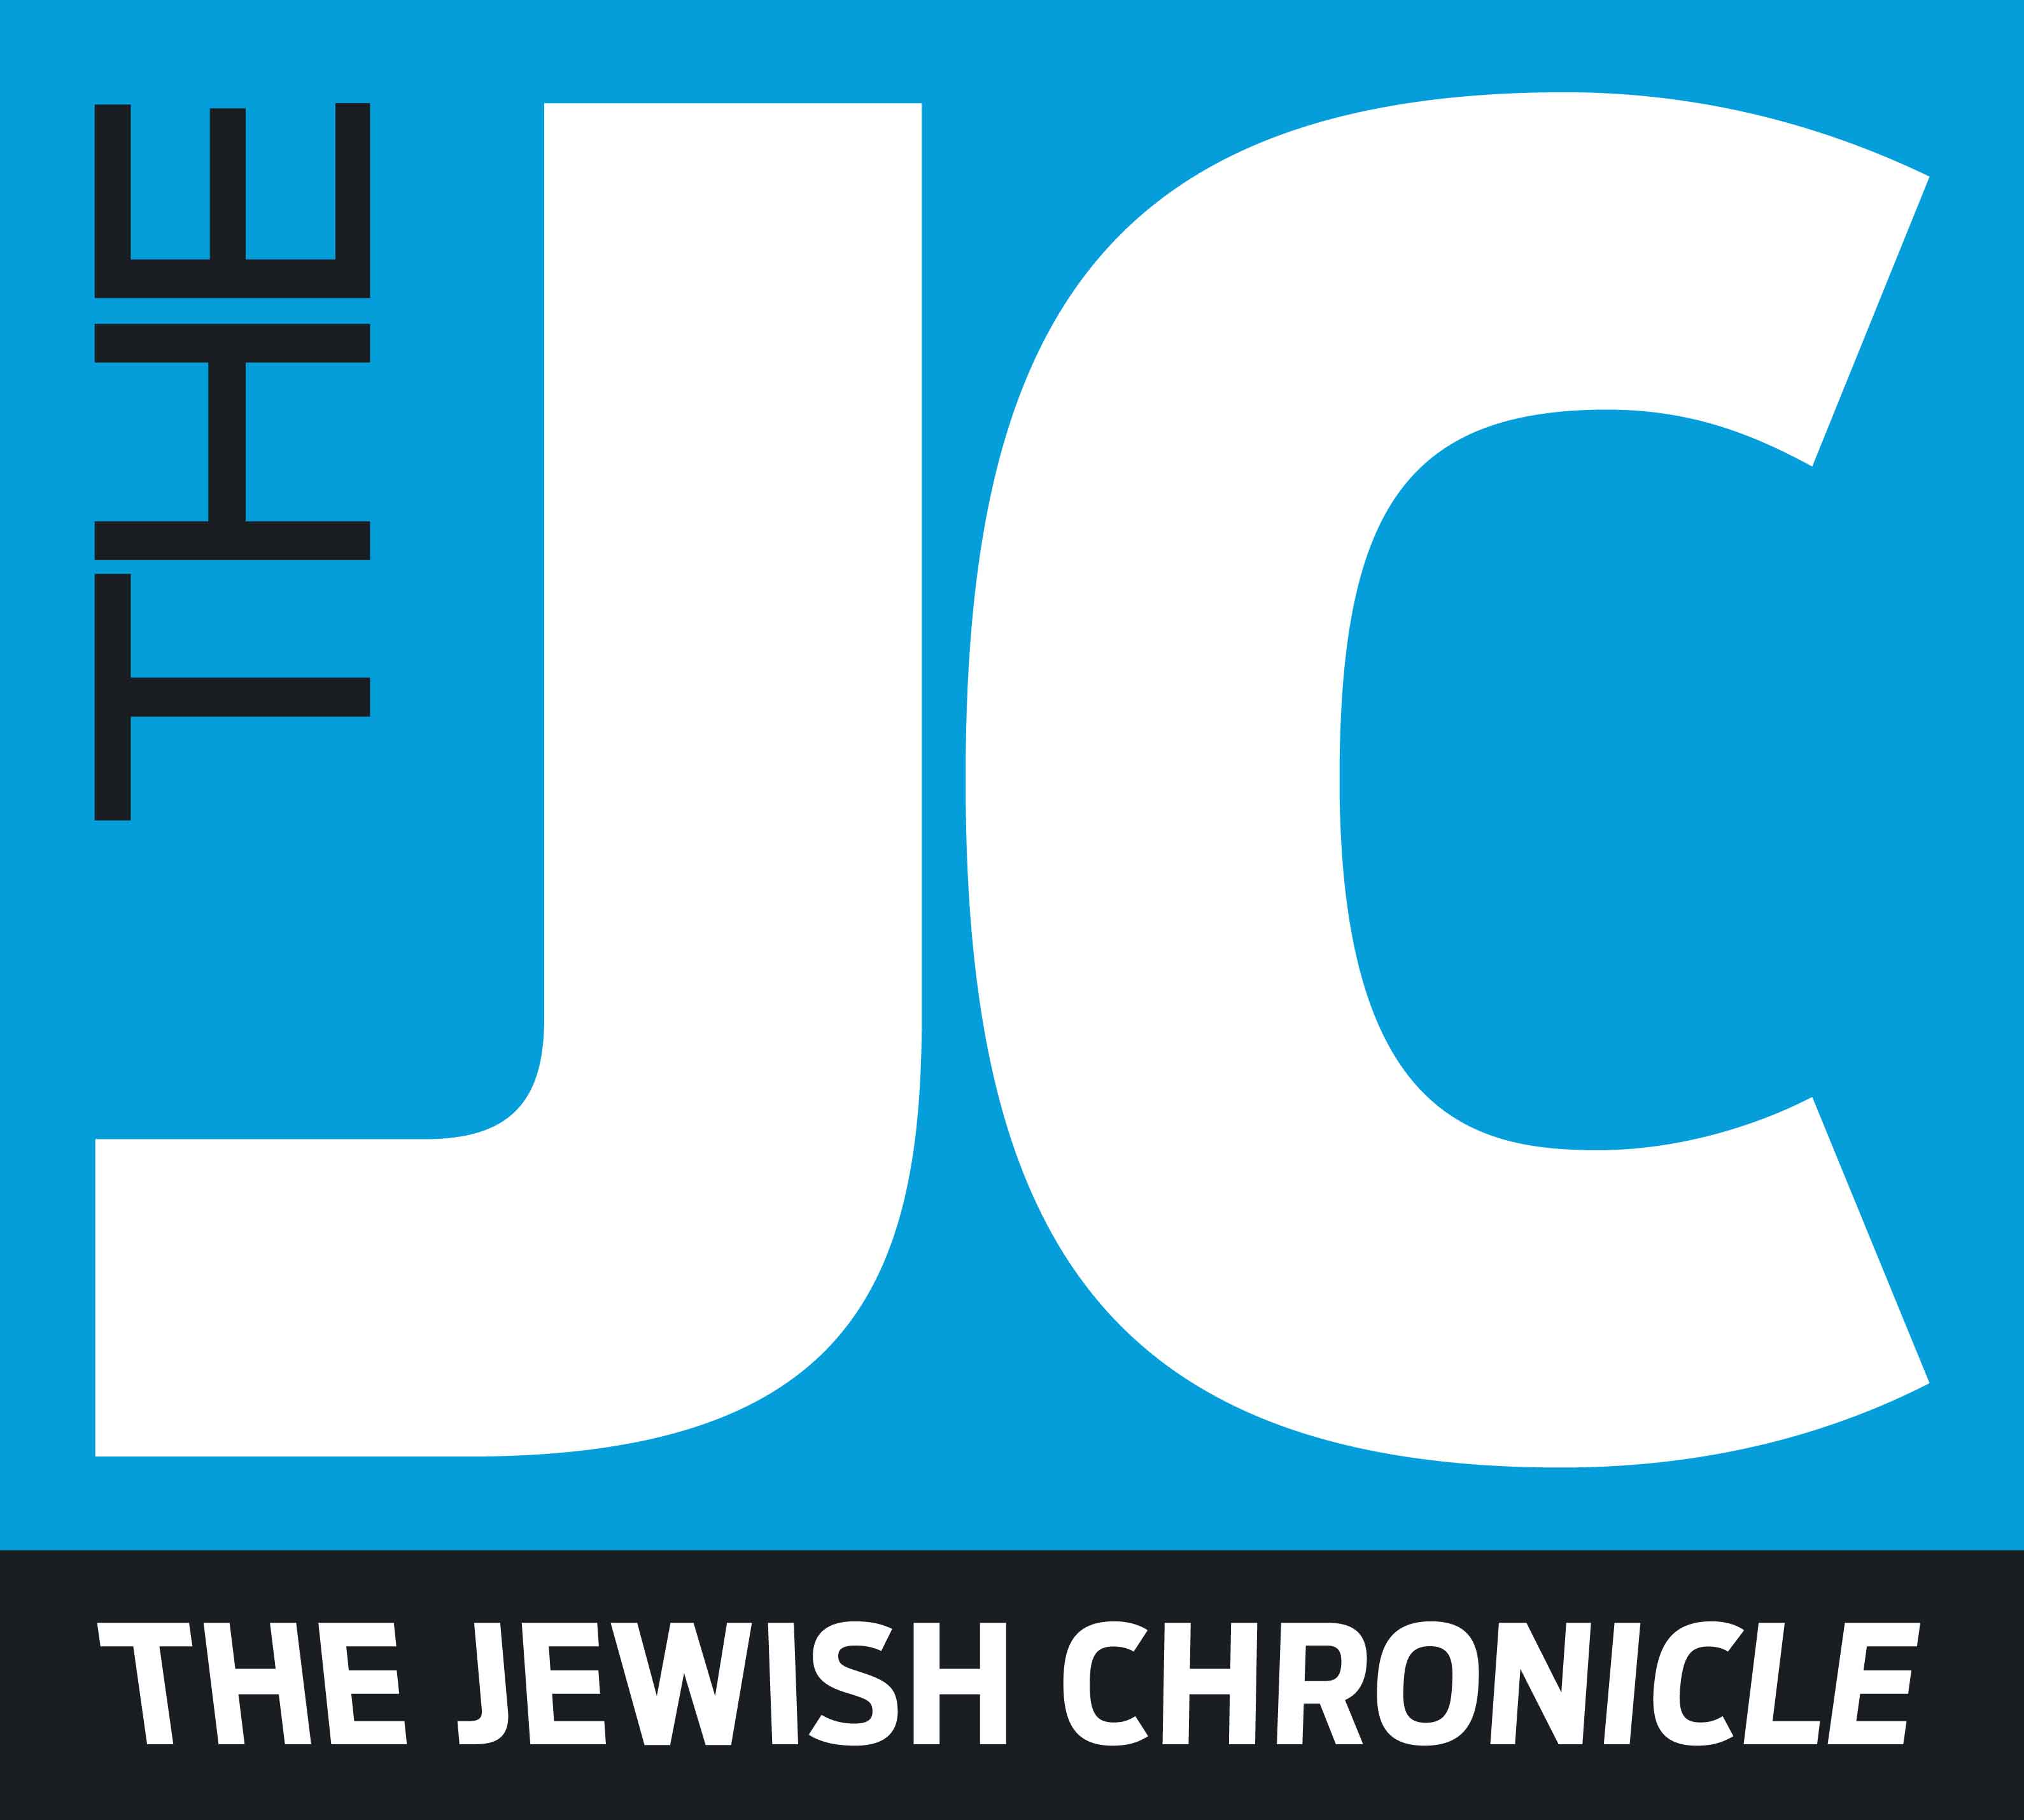 The jc jewish news comment culture the jewish chronicle the jc jewish news comment culture the jewish chronicle the jewish chronicle buycottarizona